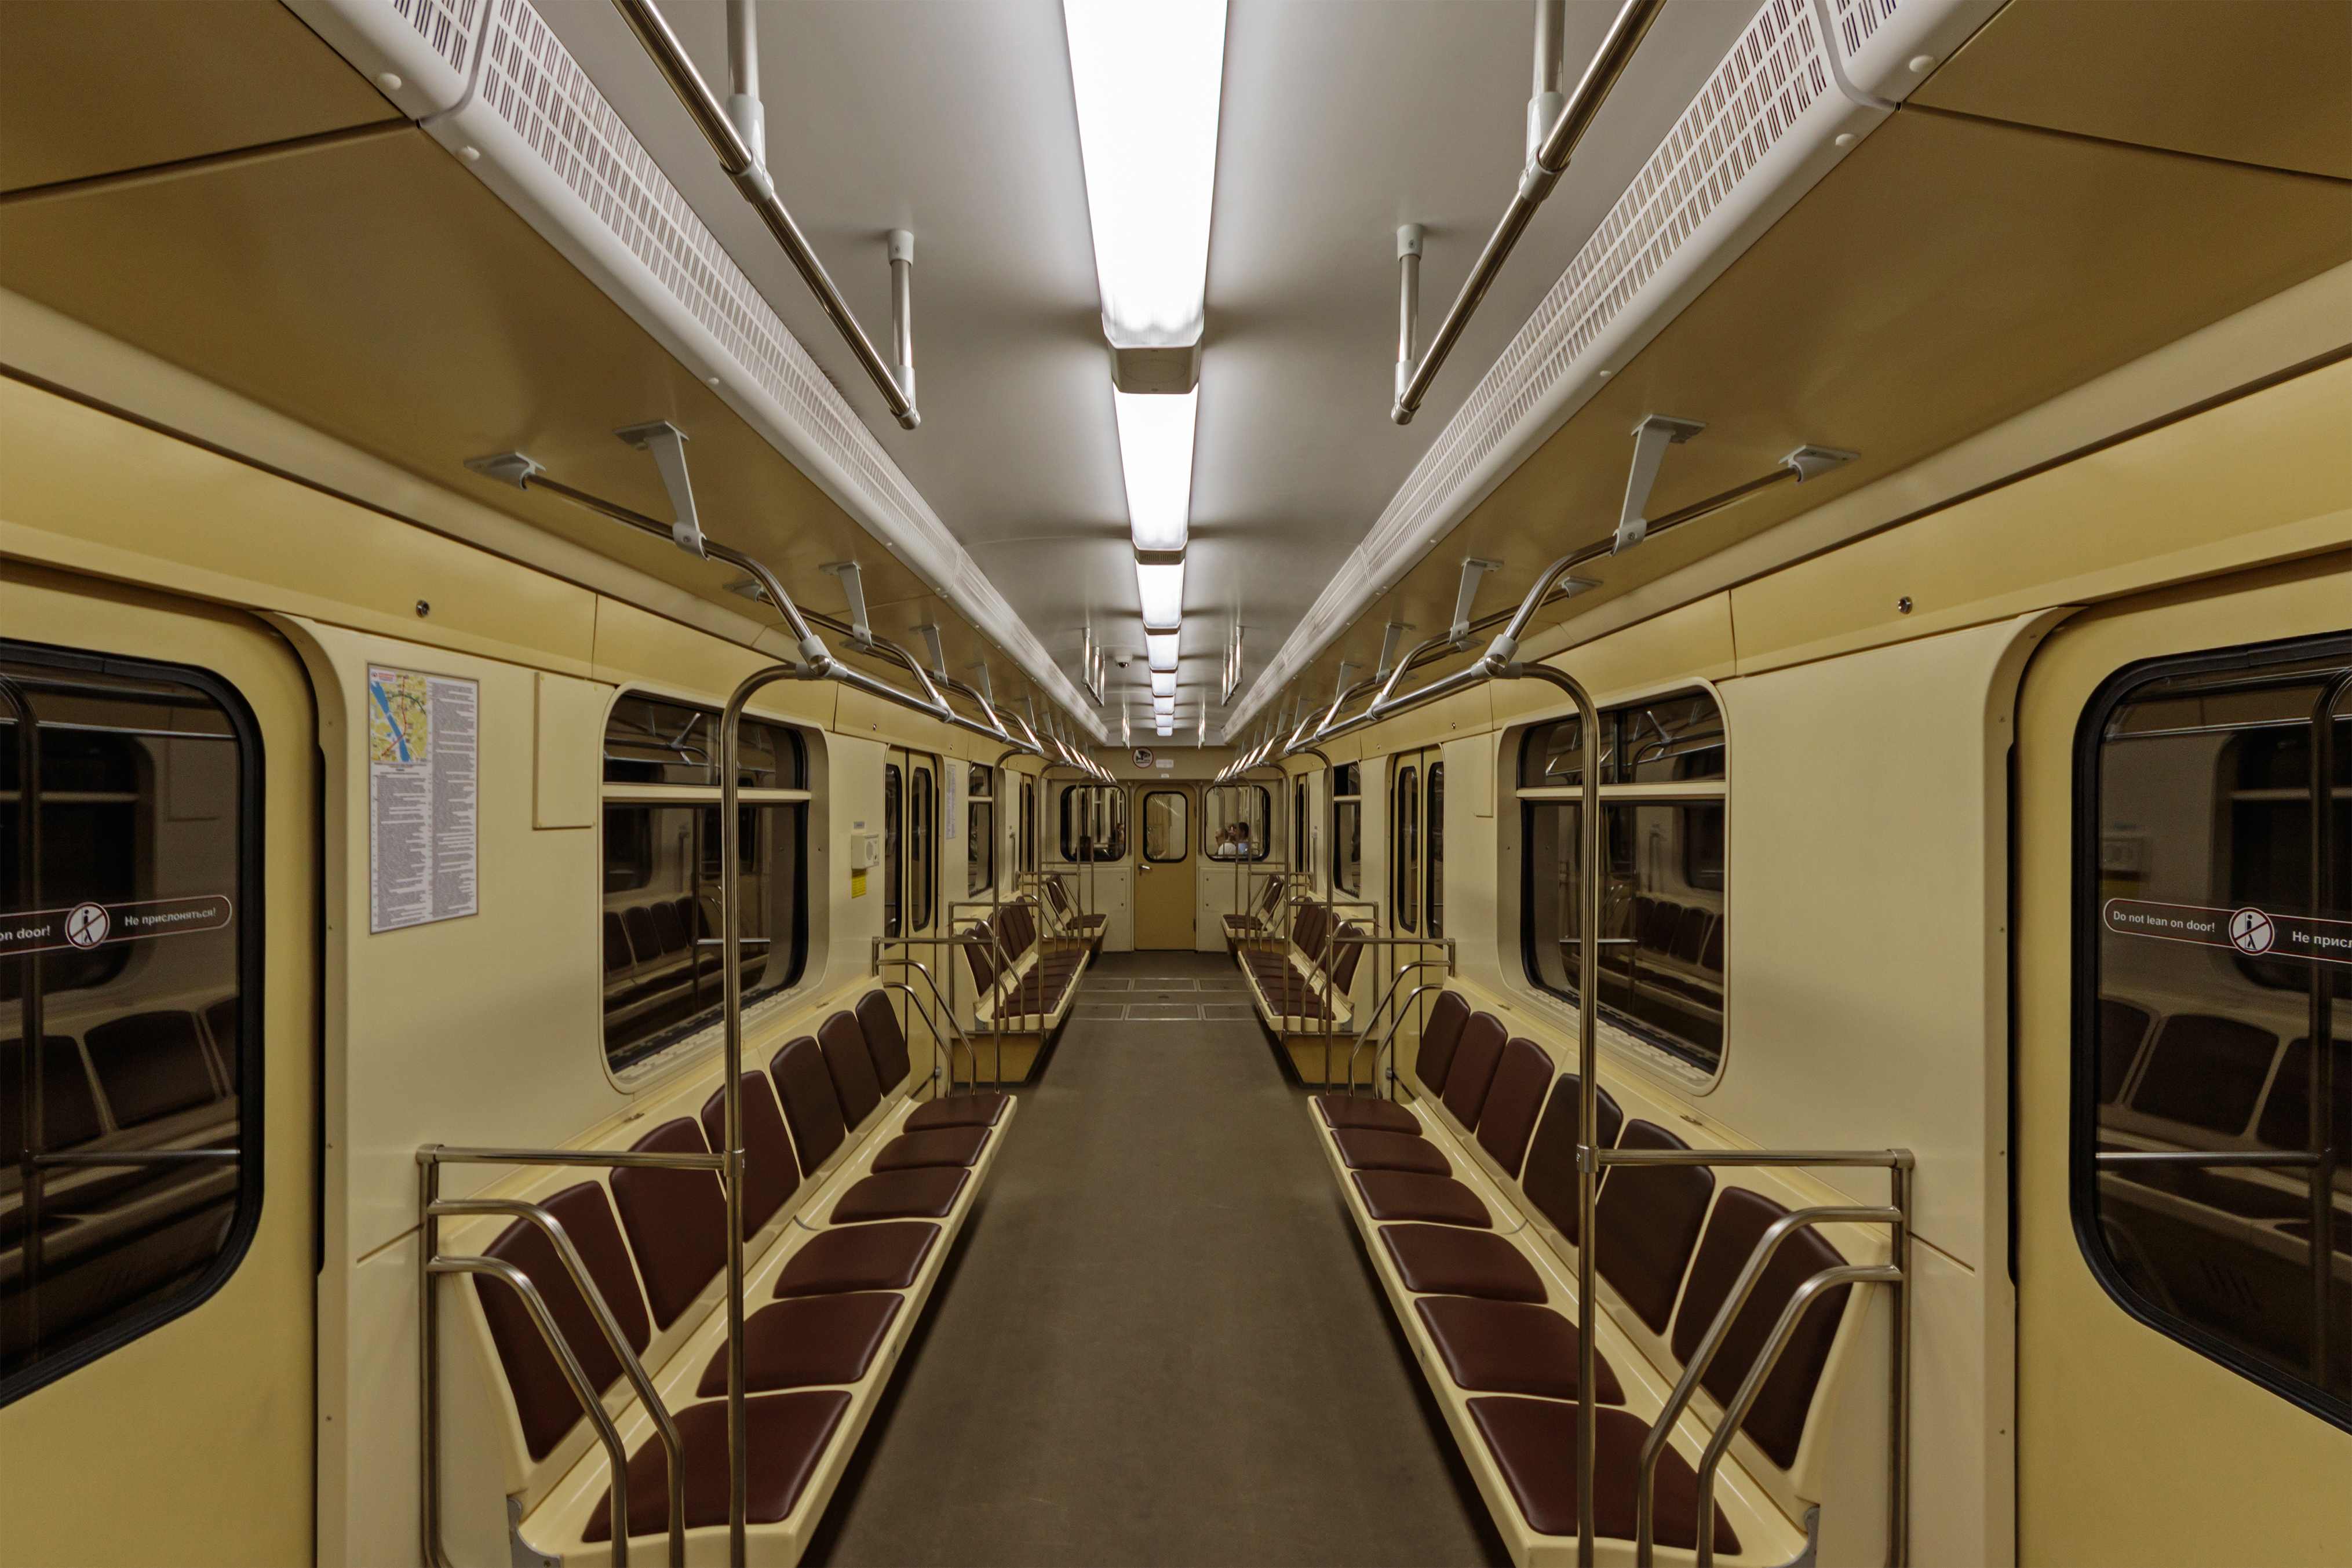 Novosibirsk Metro train interior 07-2016